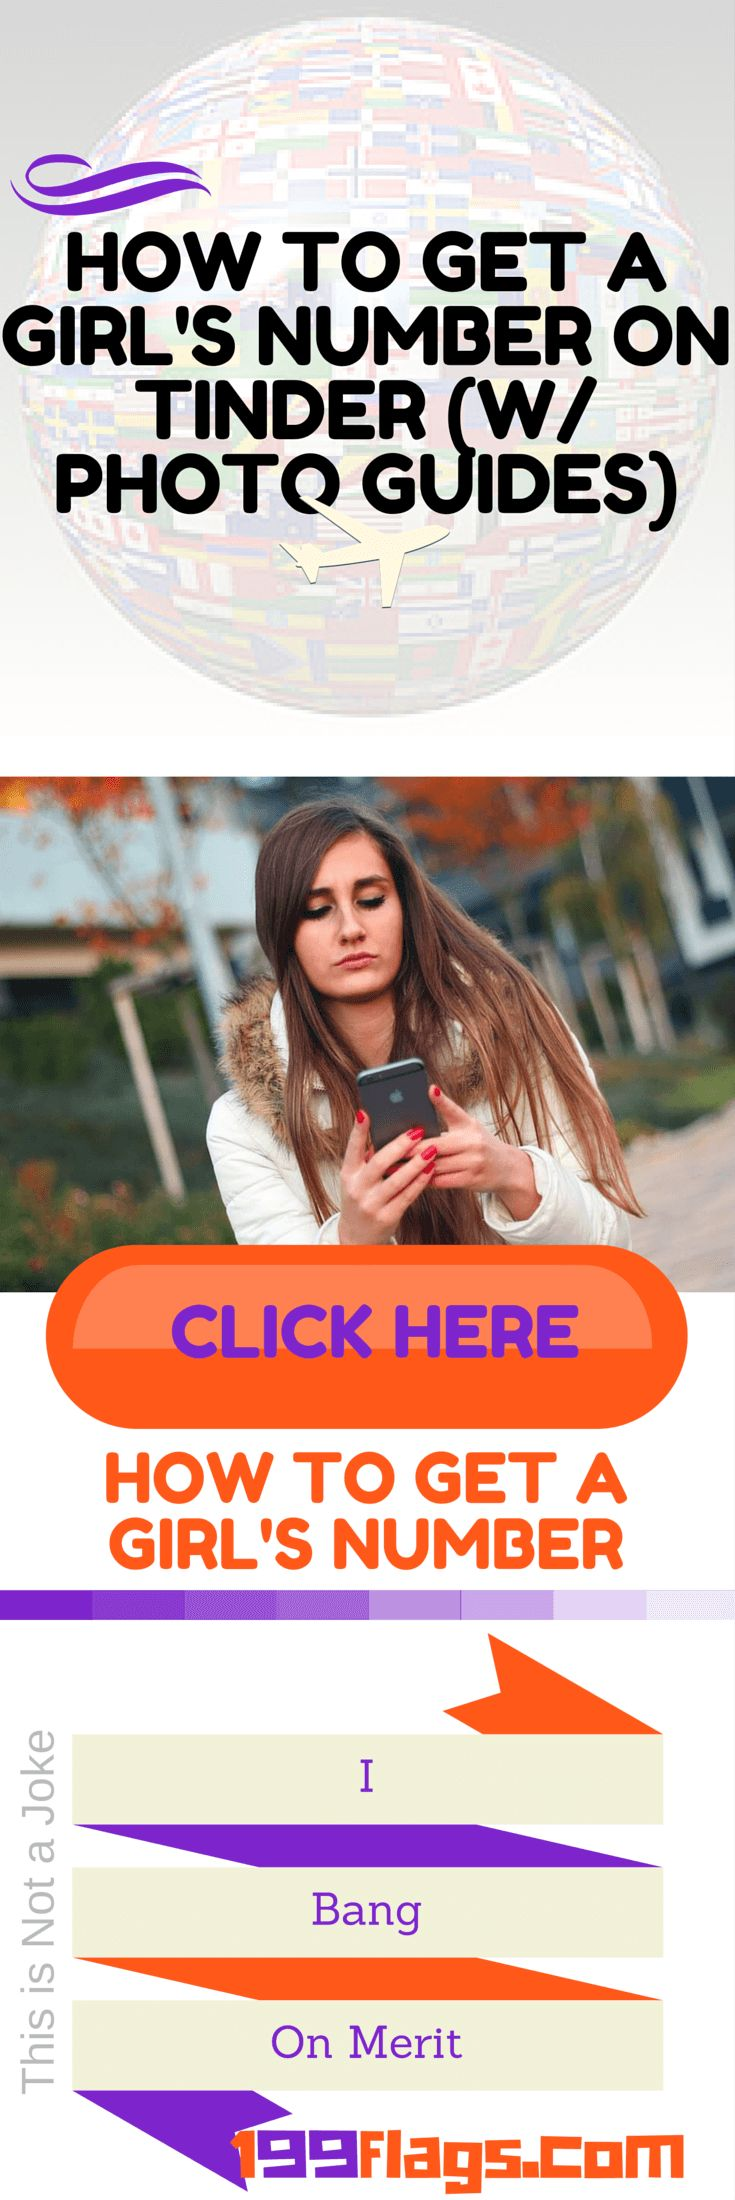 How to message a girl online dating